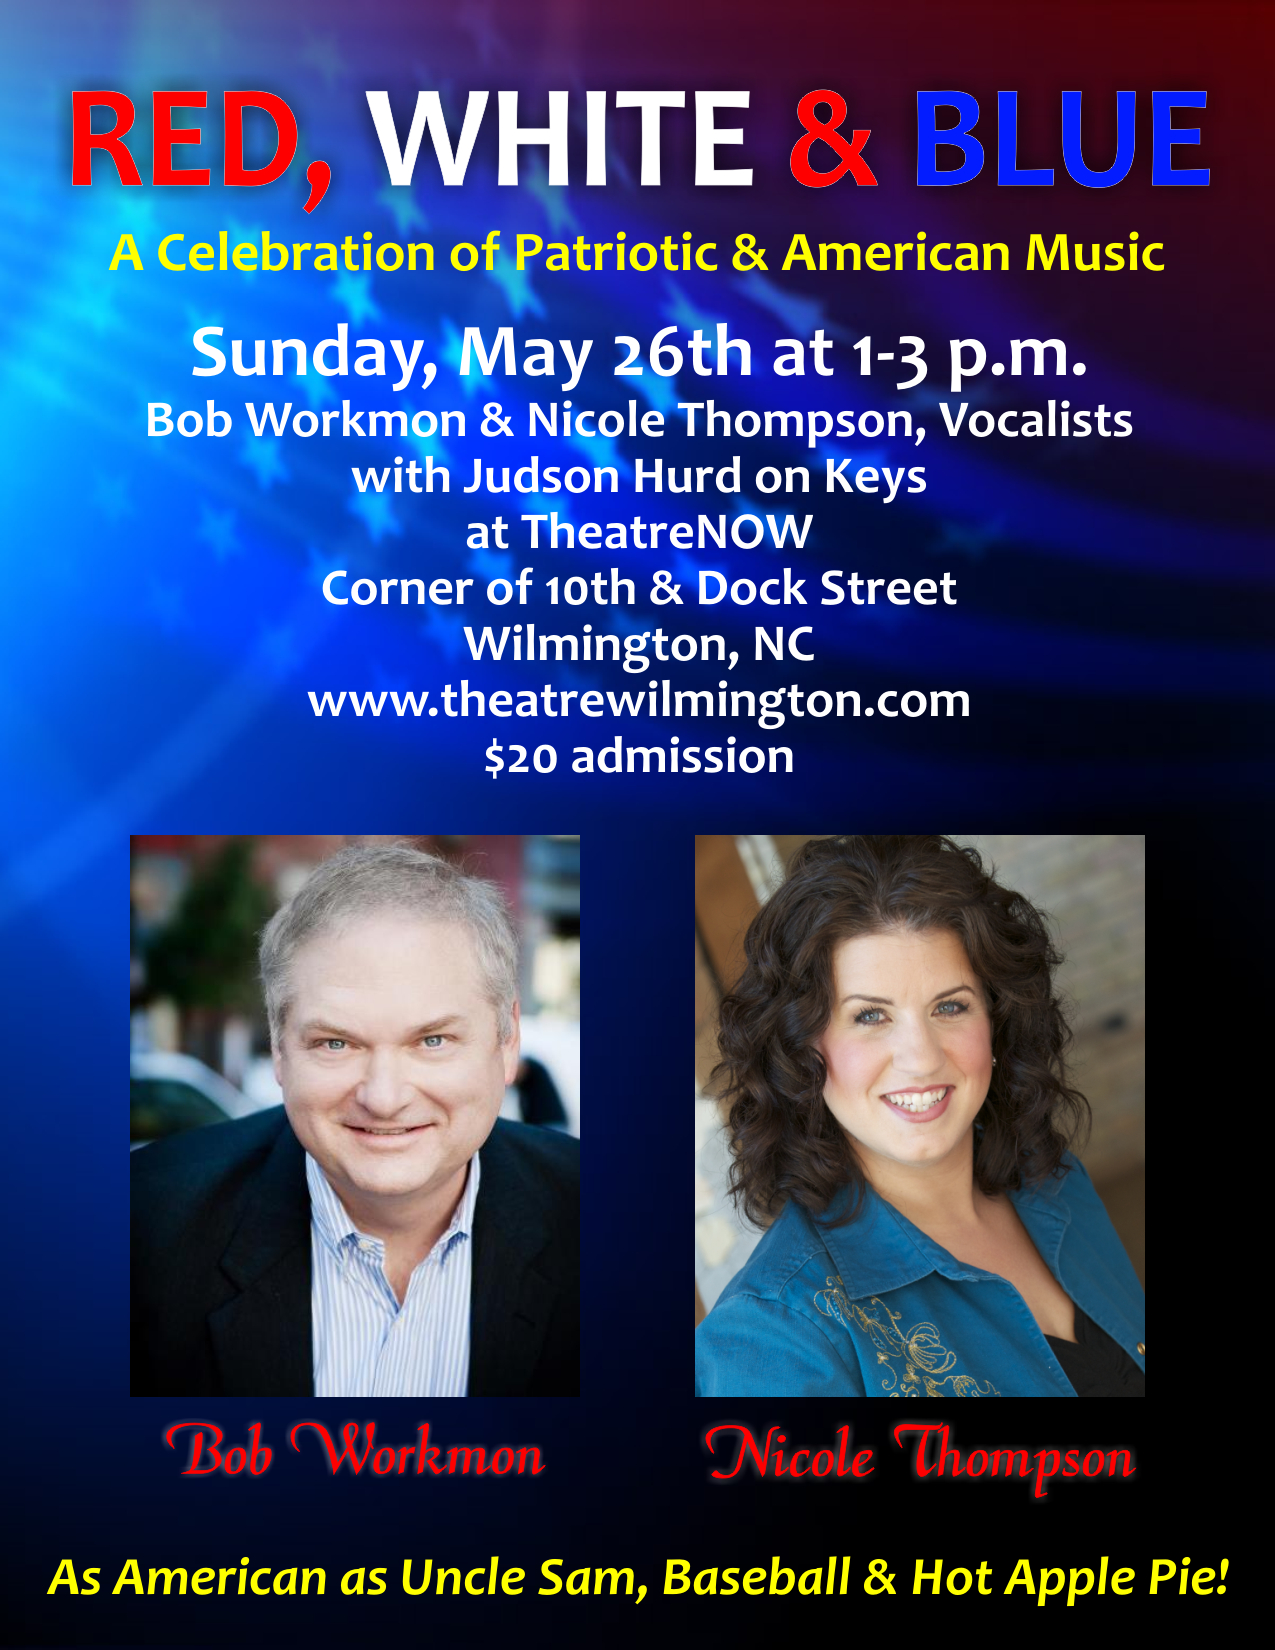 RED, WHITE & BLUE: A Celebration of Patriotic & American Music